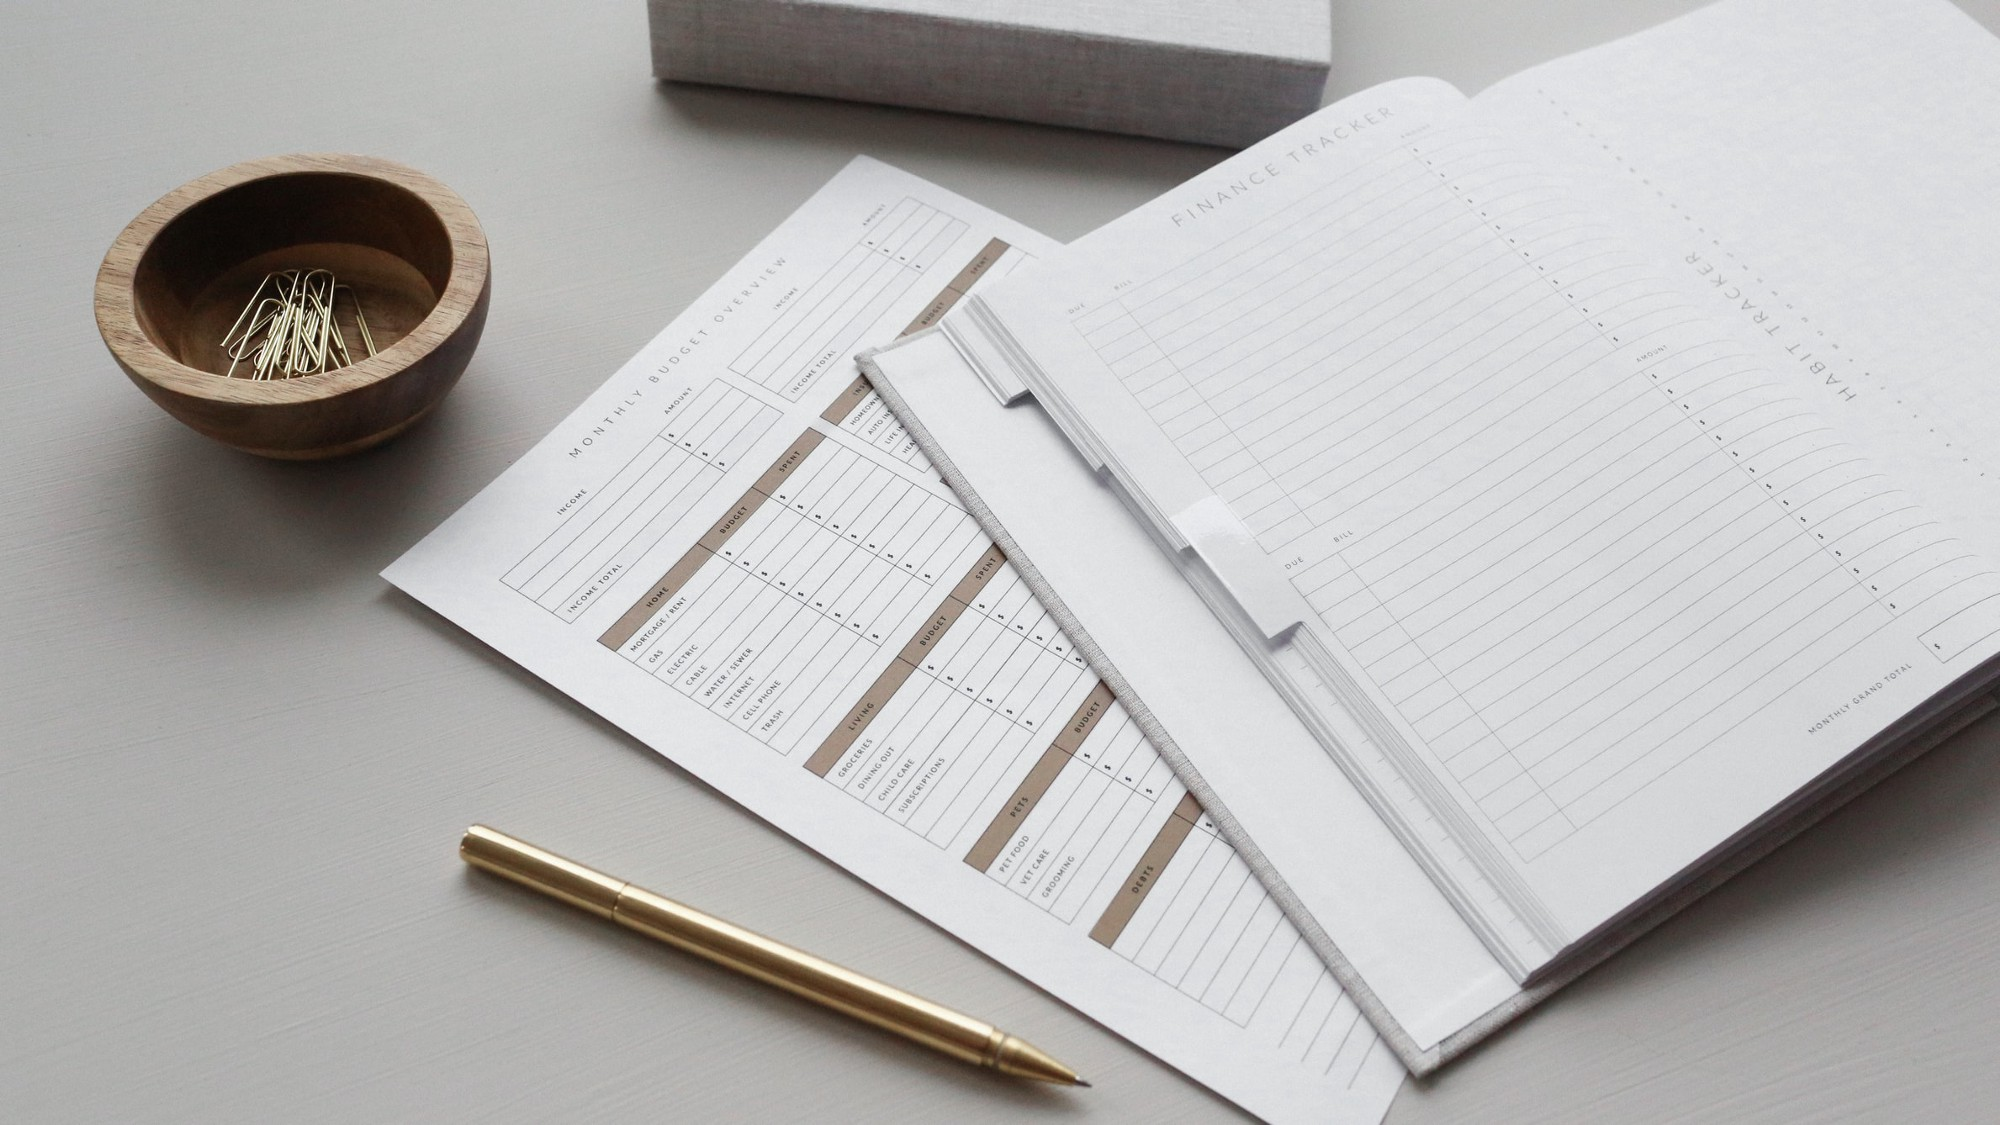 Notebook and papers on a desk.